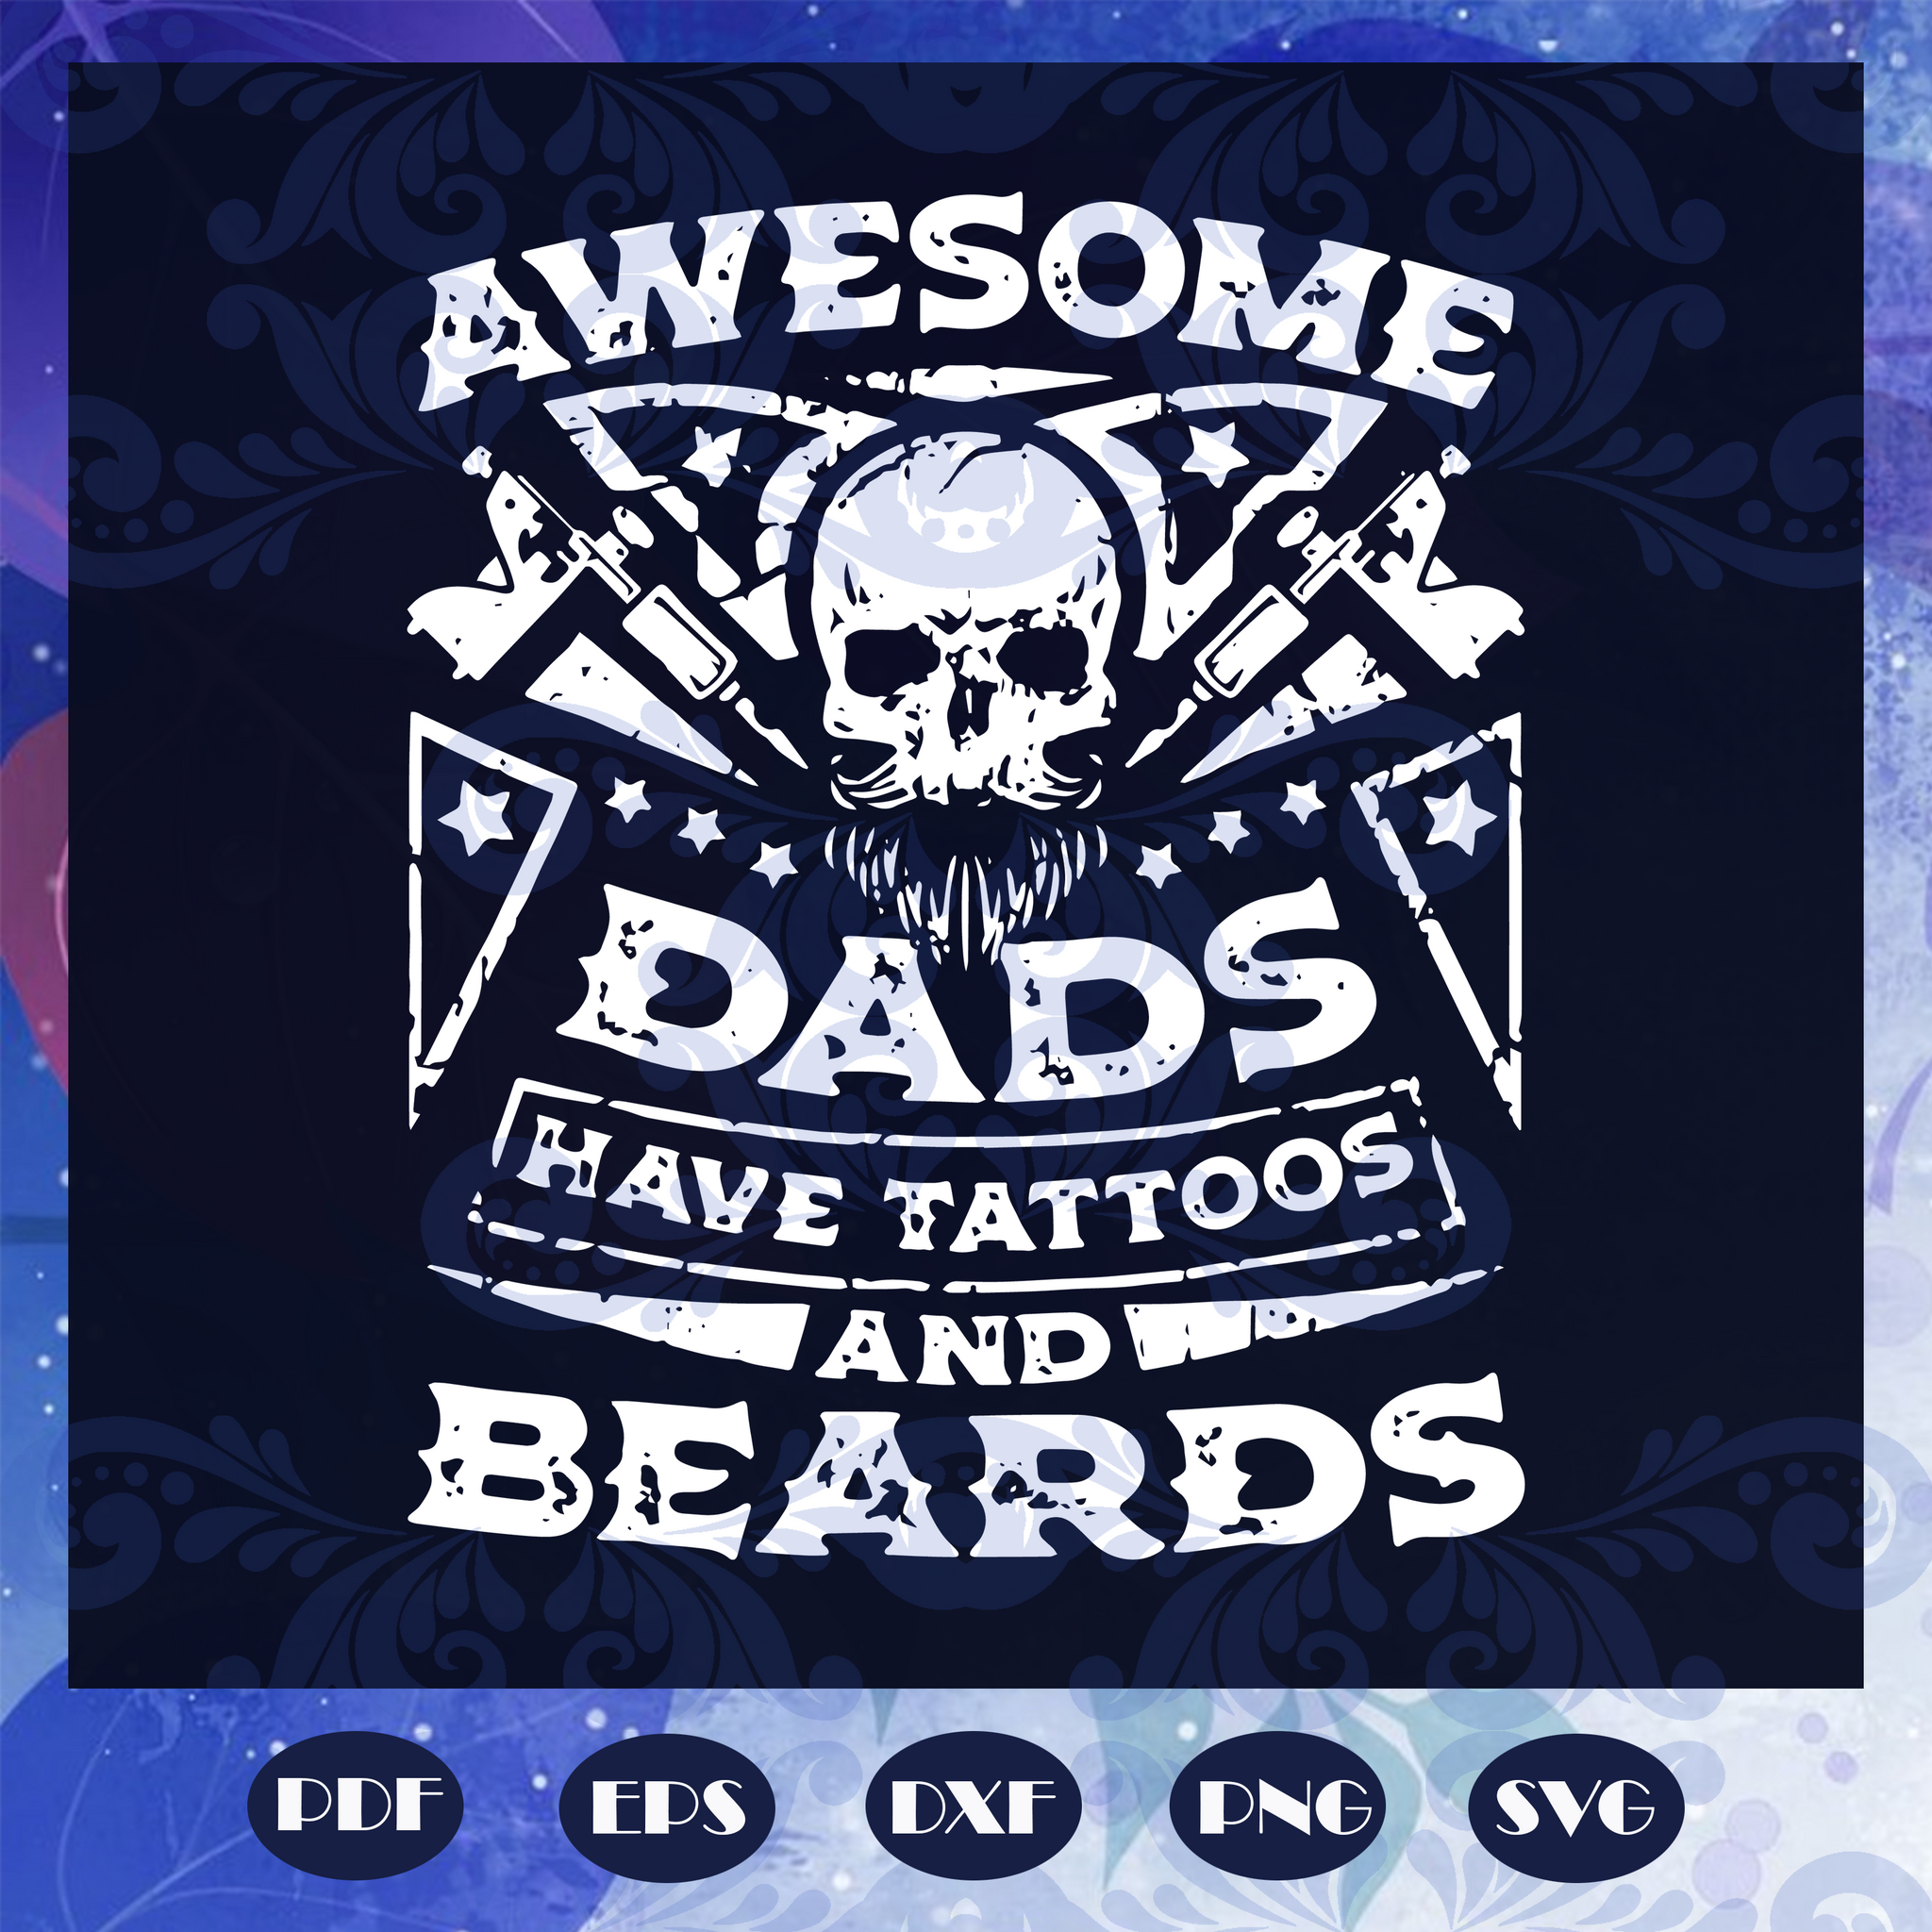 Awesome dads have tattoos and beards svg, fathers day svg, fathers day gift, gift for papa, fathers day lover, fathers day lover gift, dad life, dad svg, papa svg, family, Files For Silhouette, Files For Cricut, SVG, DXF, EPS, PNG, Instant Download